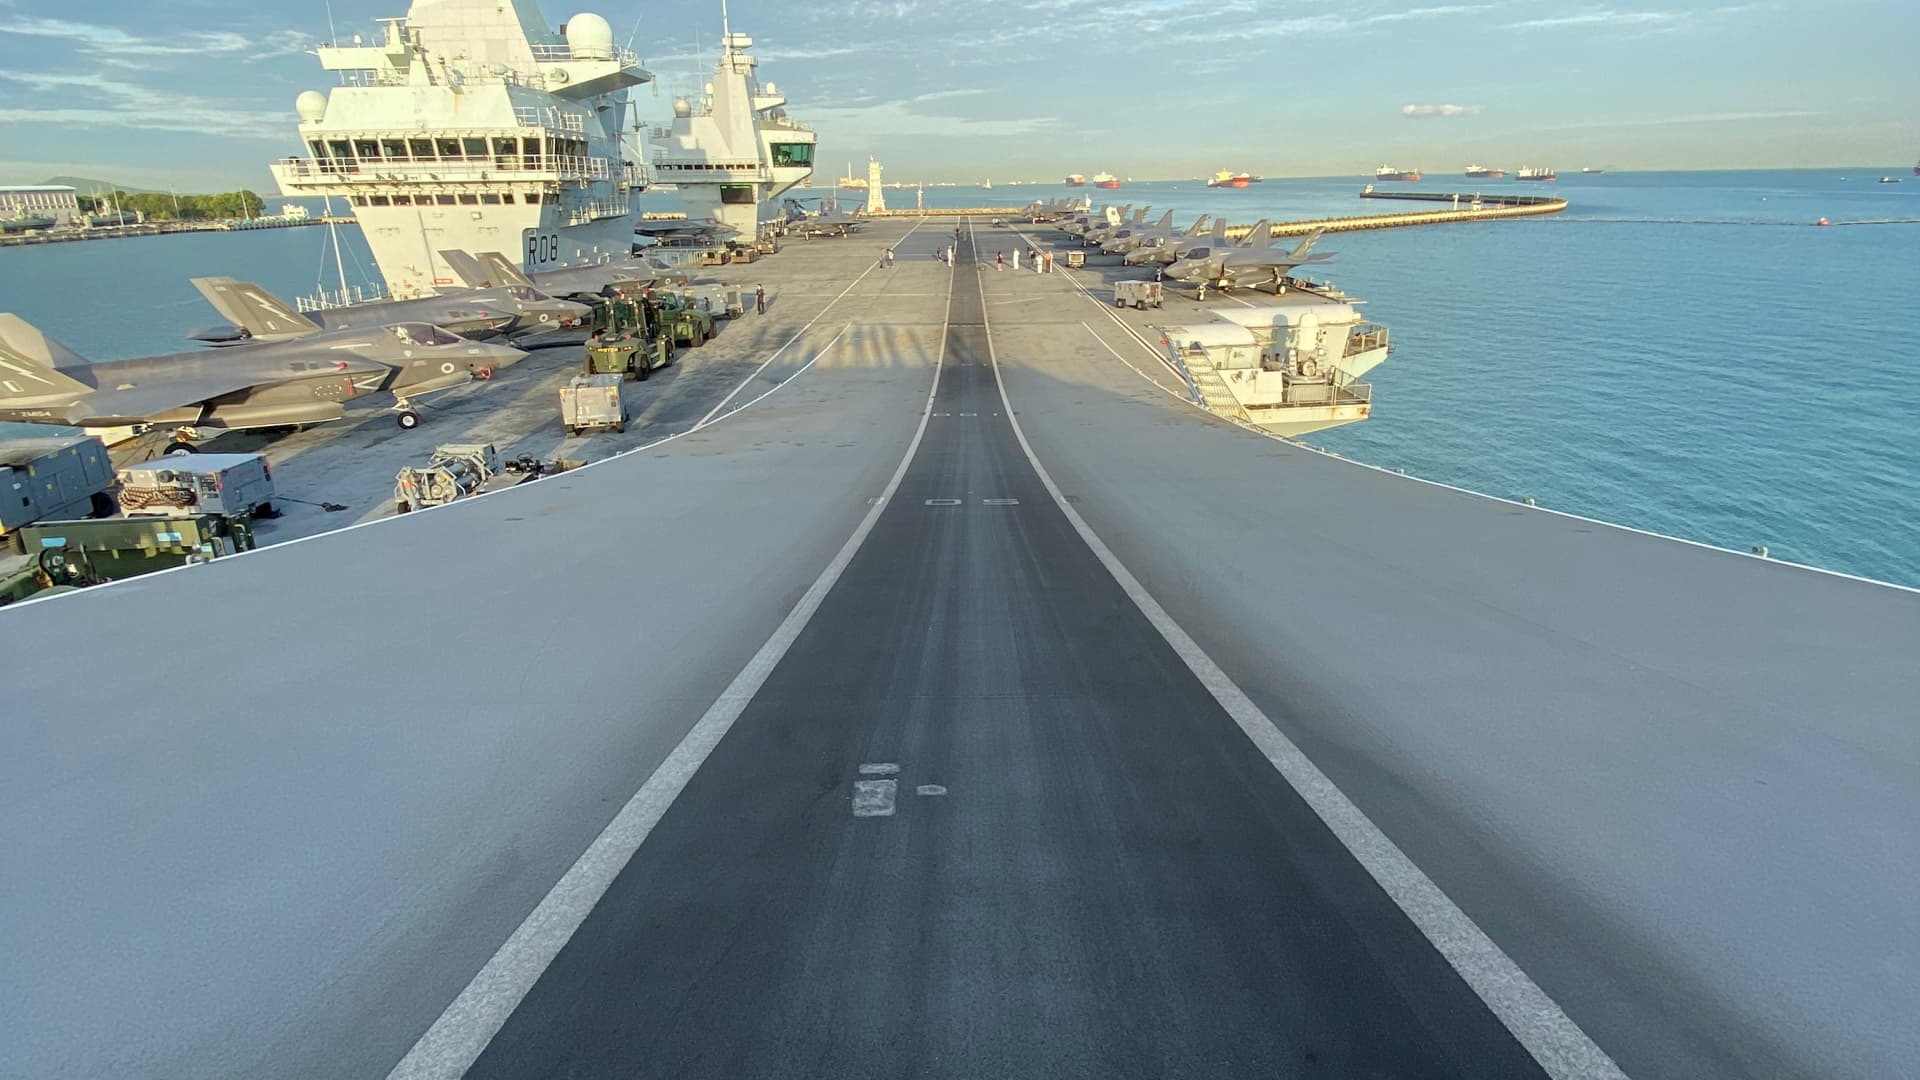 A view of HMS Queen Elizabeth's flight deck from the top of the aircraft carrier's ski ramp.